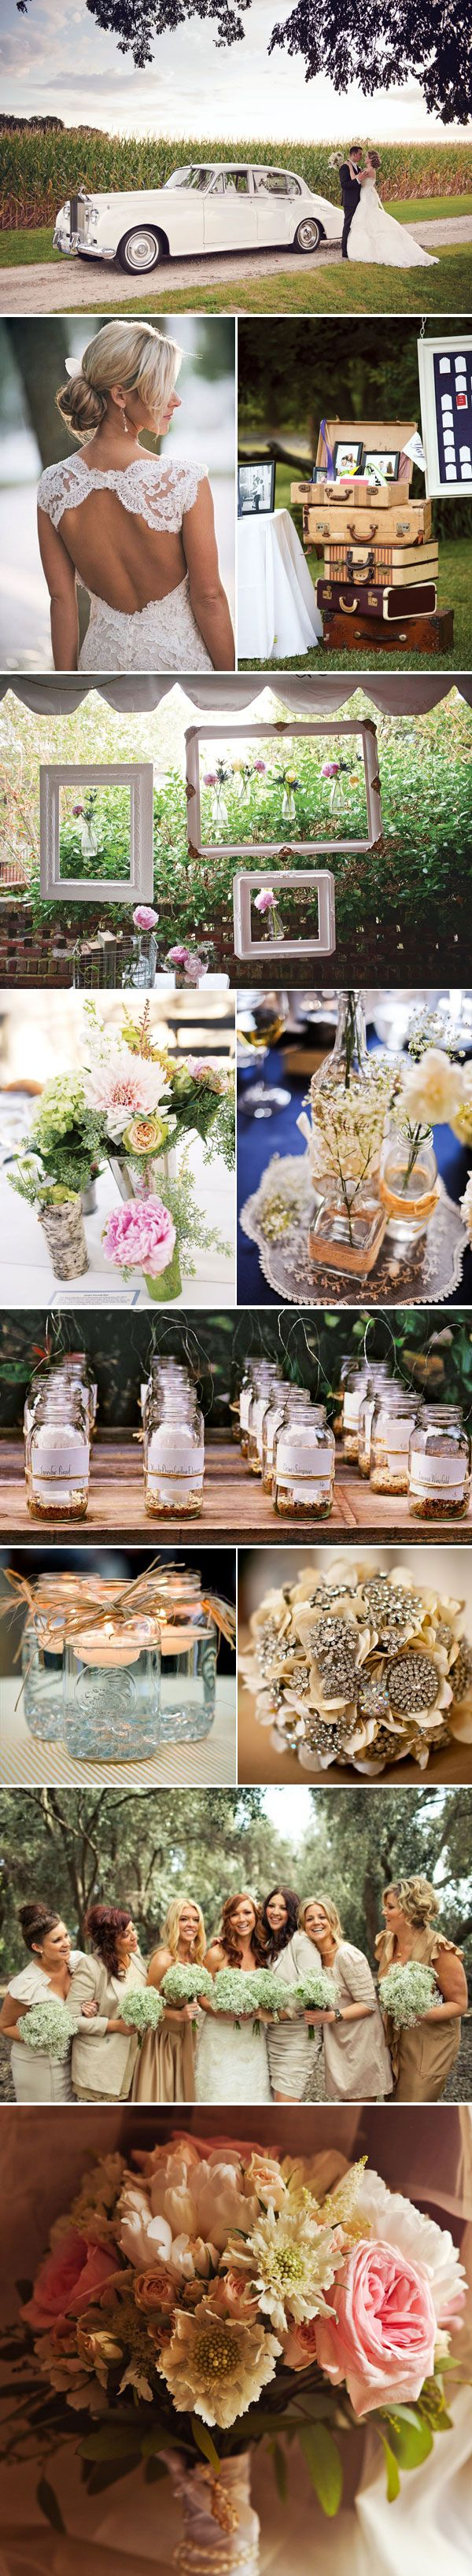 Vintage - The vintage wedding trend is still going strong! It's no surprise — there's just something that feels so romantic about adding old-world items and antiques to your big day. Many couples opt to include family heirlooms within their décor, giving a personal touch to their vintage wedding.